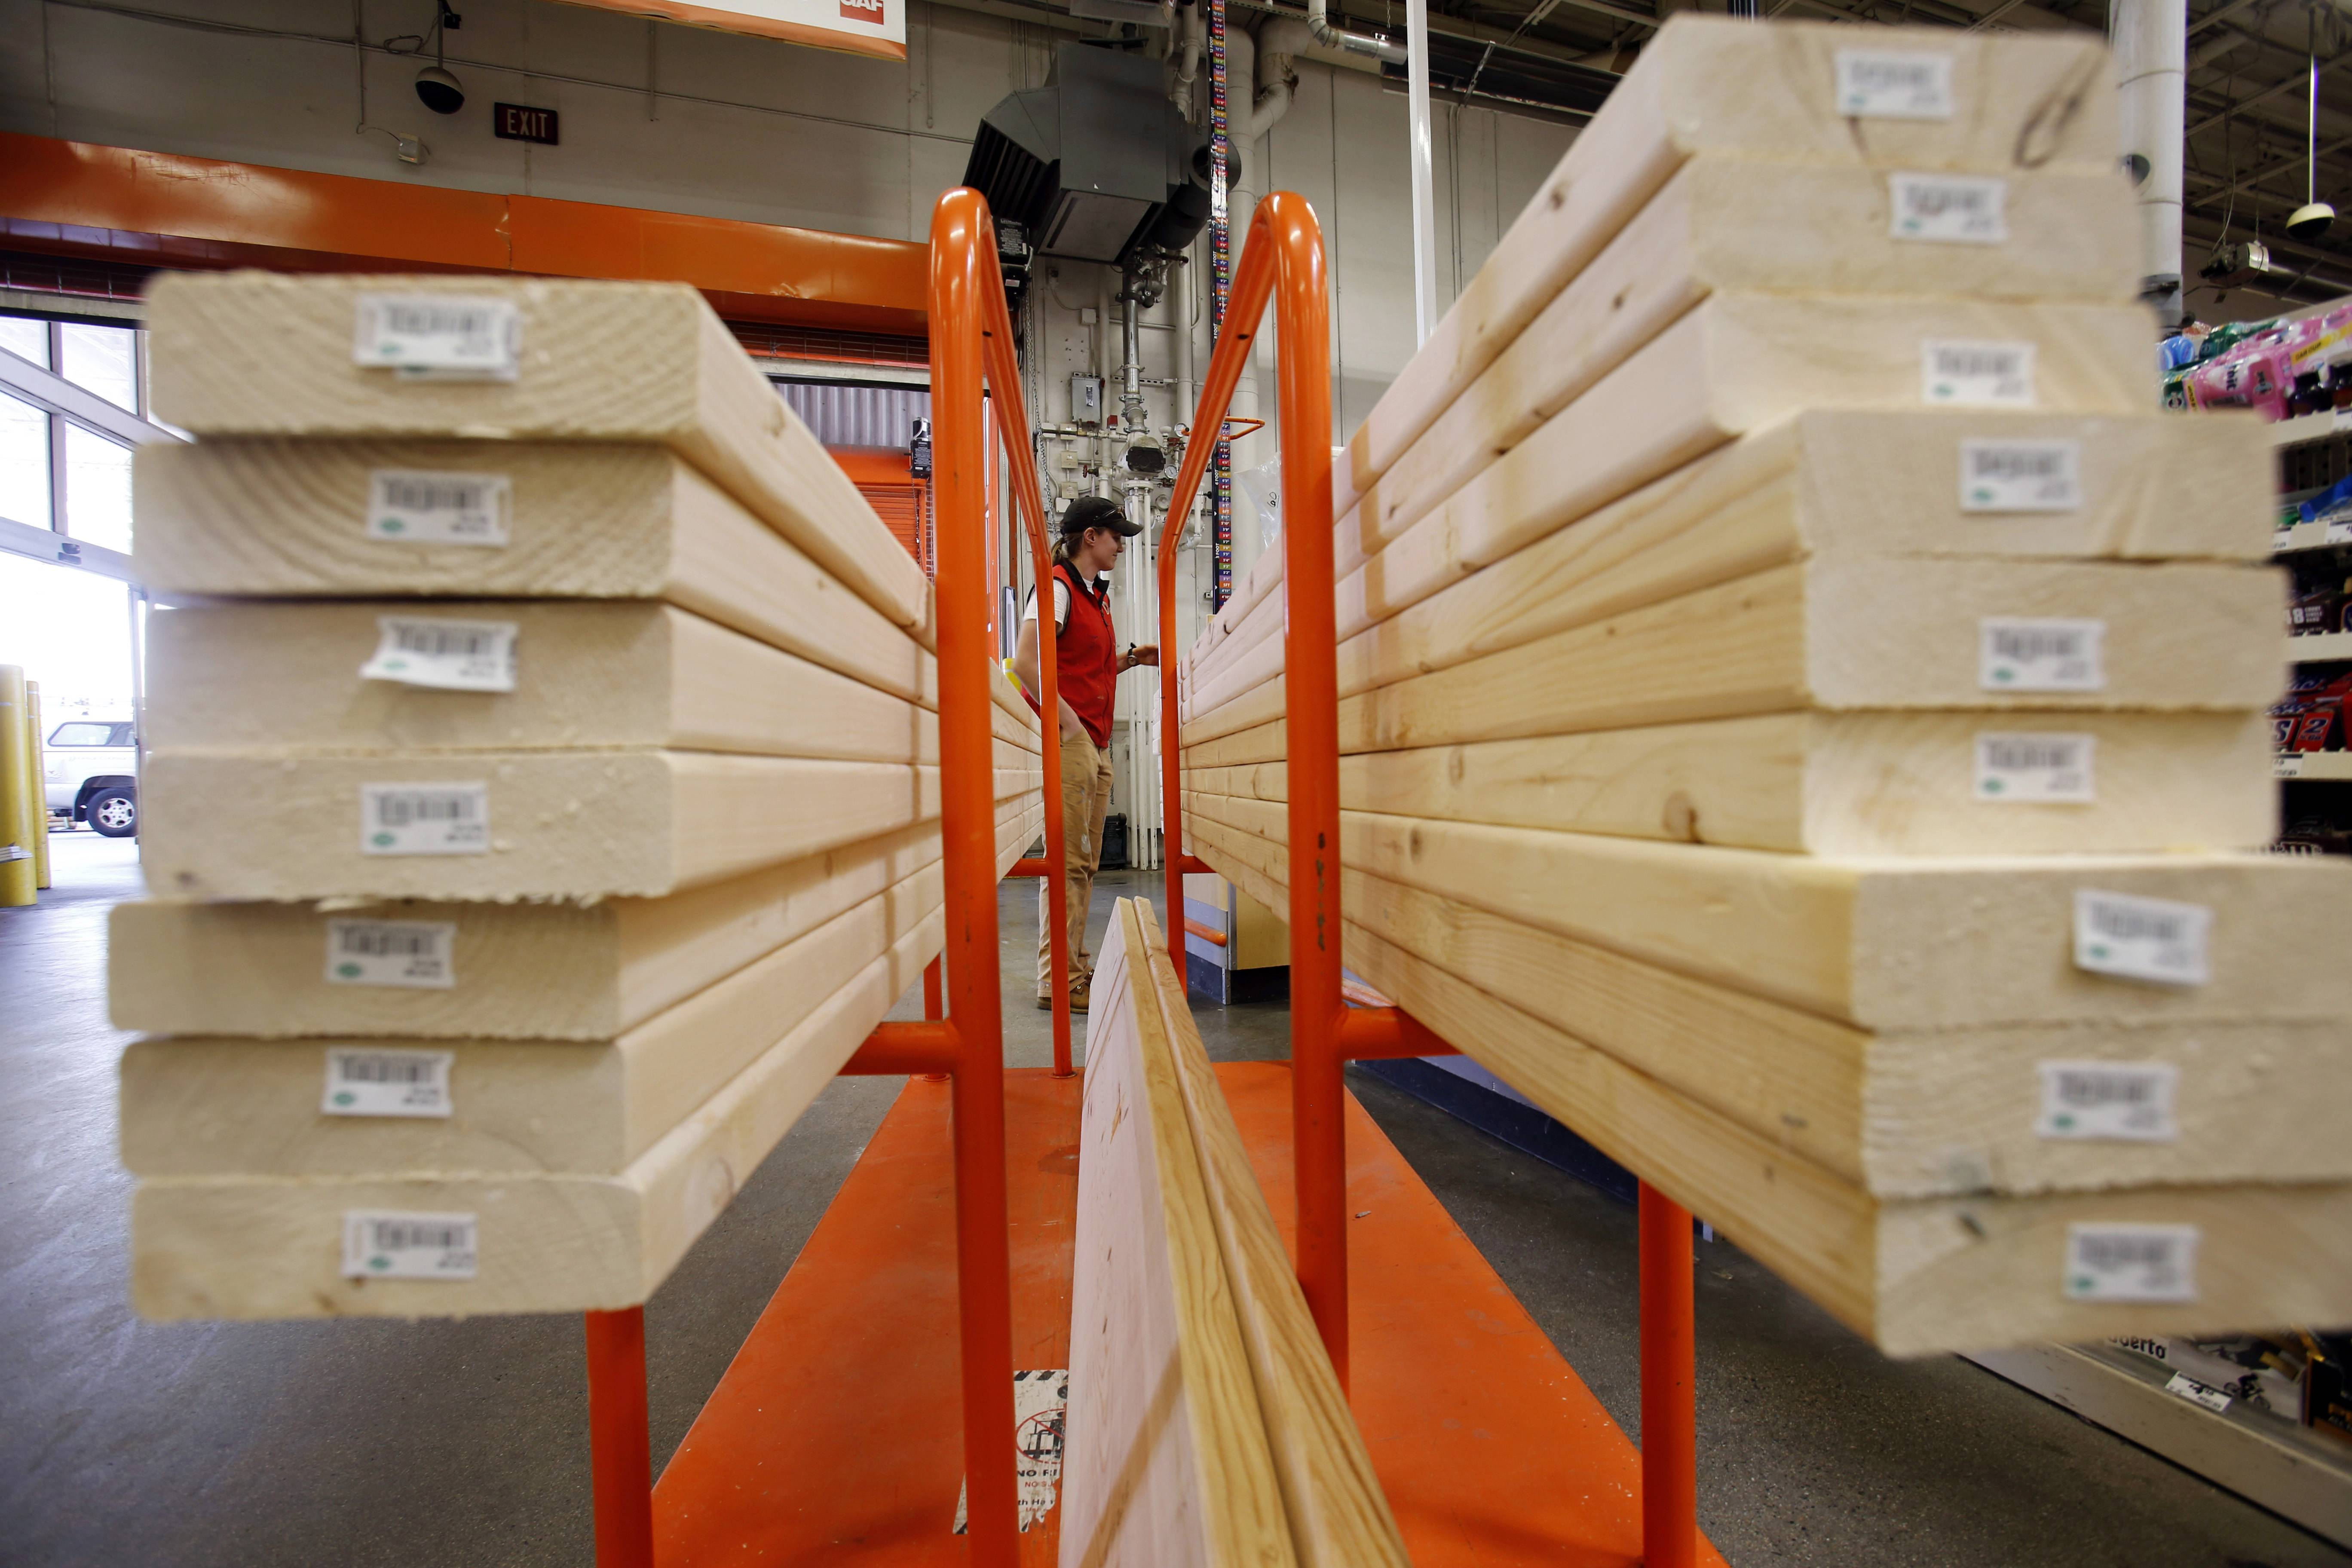 A shopper checks out with her lumber at a Home Depot in BostonHome Depot Inc., the largest U.S. home-improvement retailer, posted second-quarter profit that topped analysts' estimates and raised its forecast for the year as sales of seasonal merchandise rebounded. The shares gained.